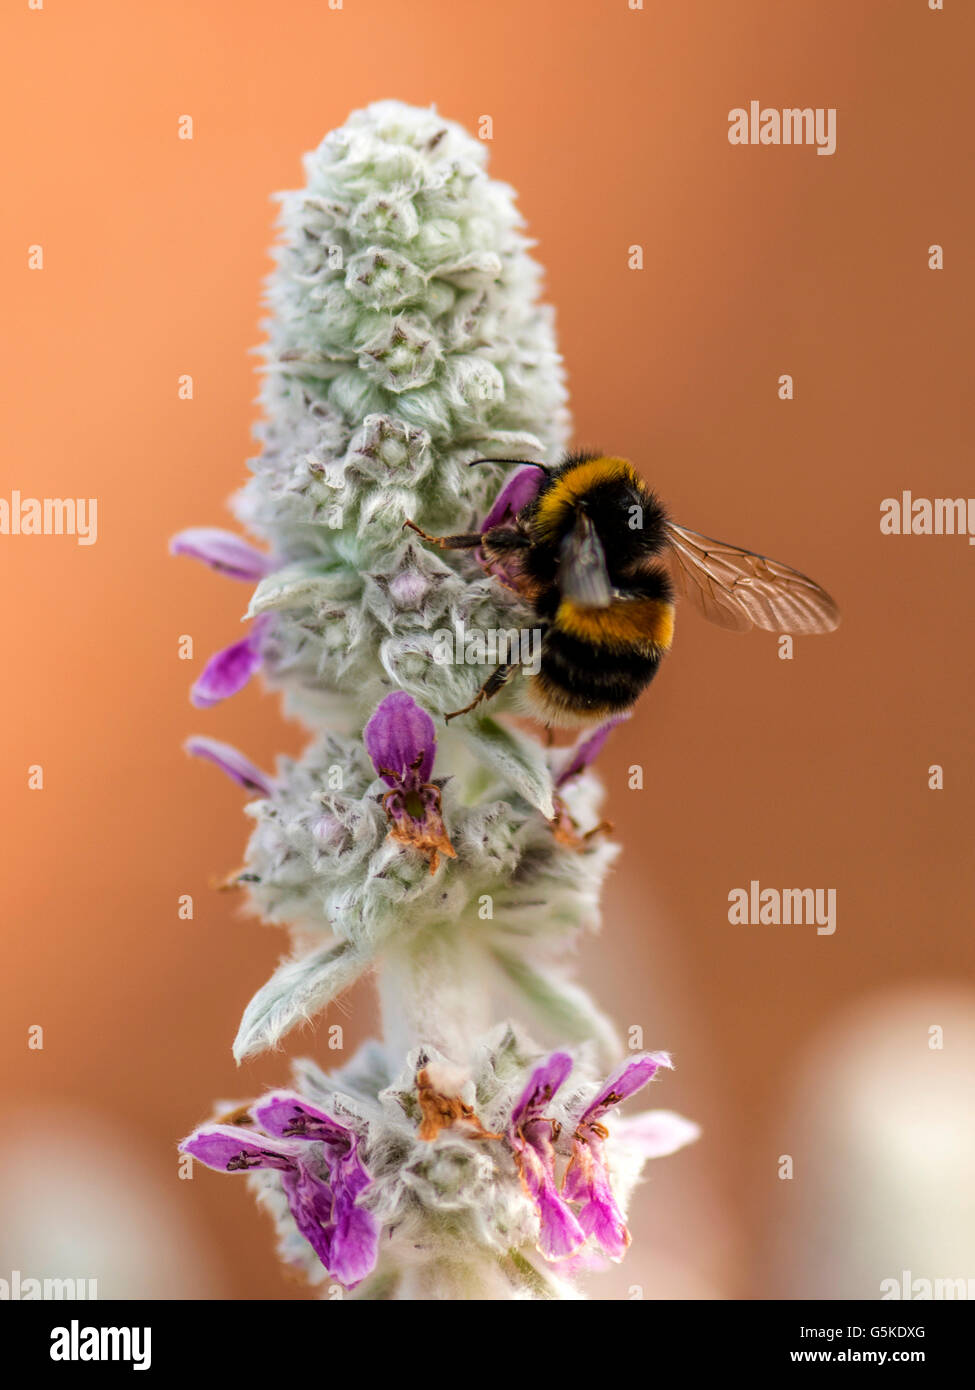 Spring Pollinator, Bumblebee (Bombus) foraging for nectar from the pink flowers of the white-woolly Lamb's Ear - Stock Image